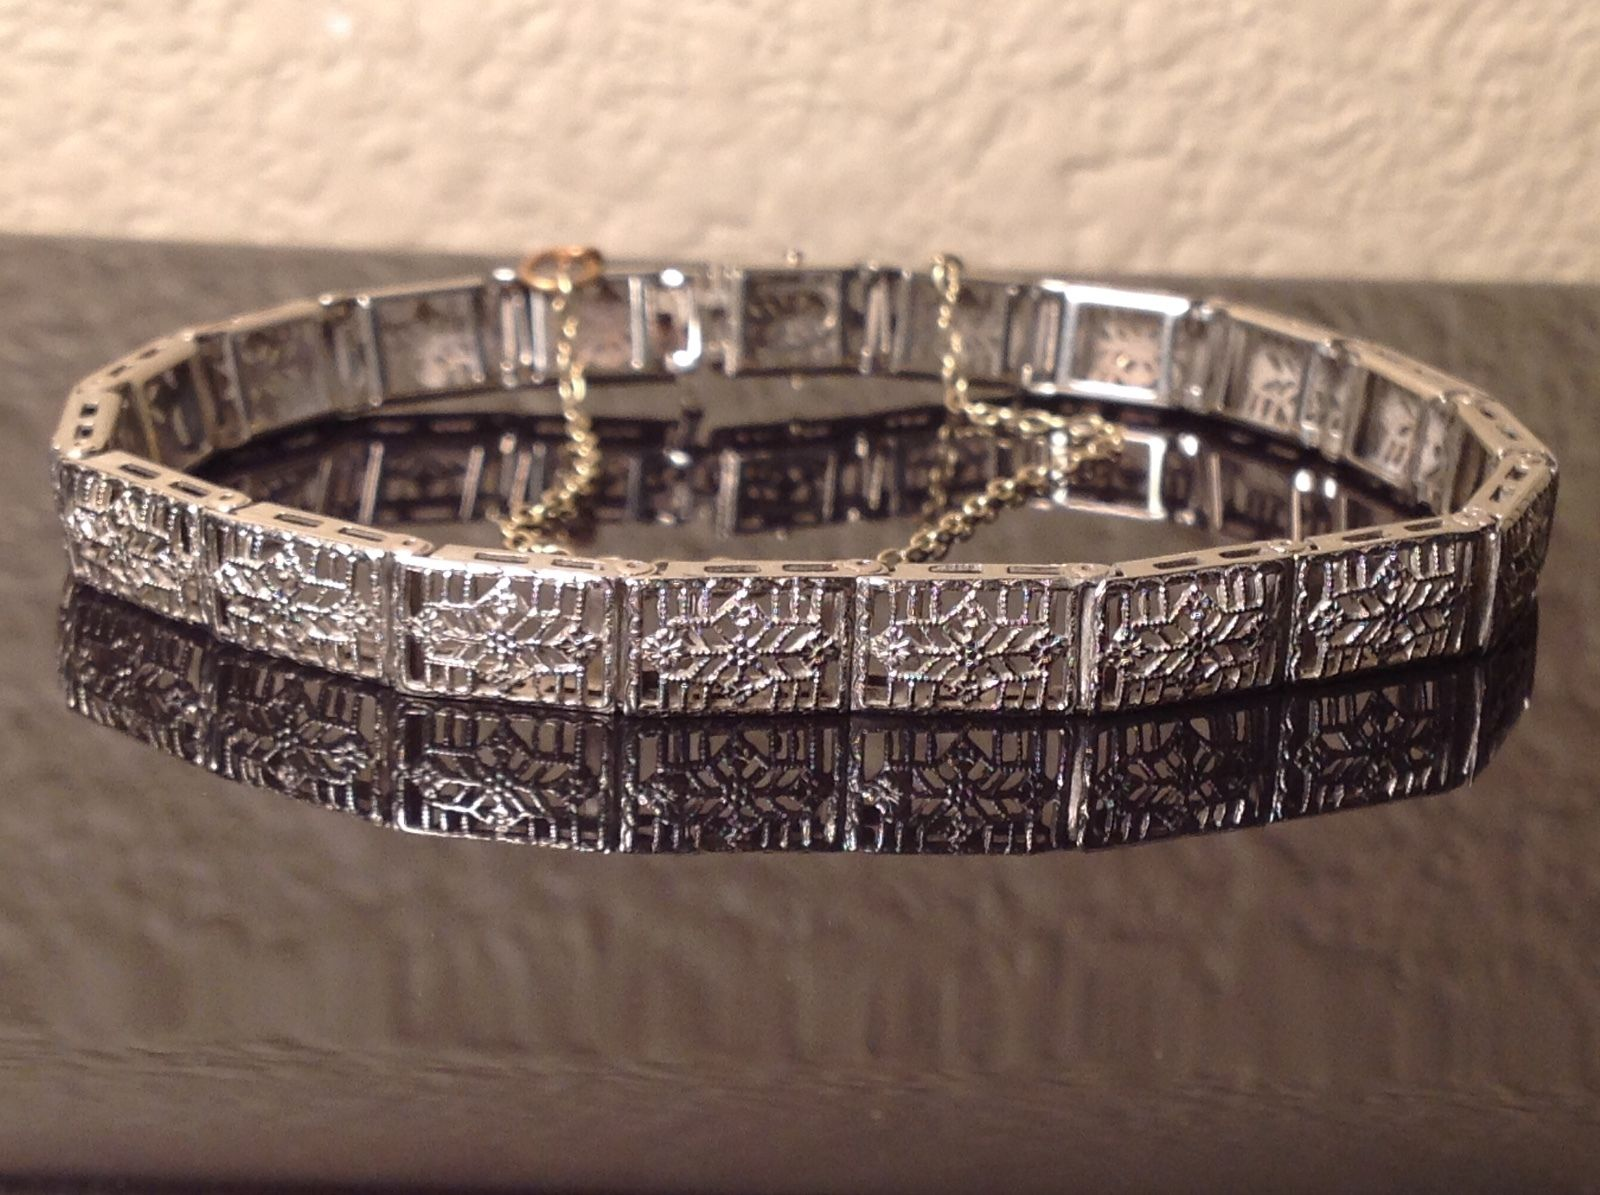 Antique White Gold Bracelet Image And Candle